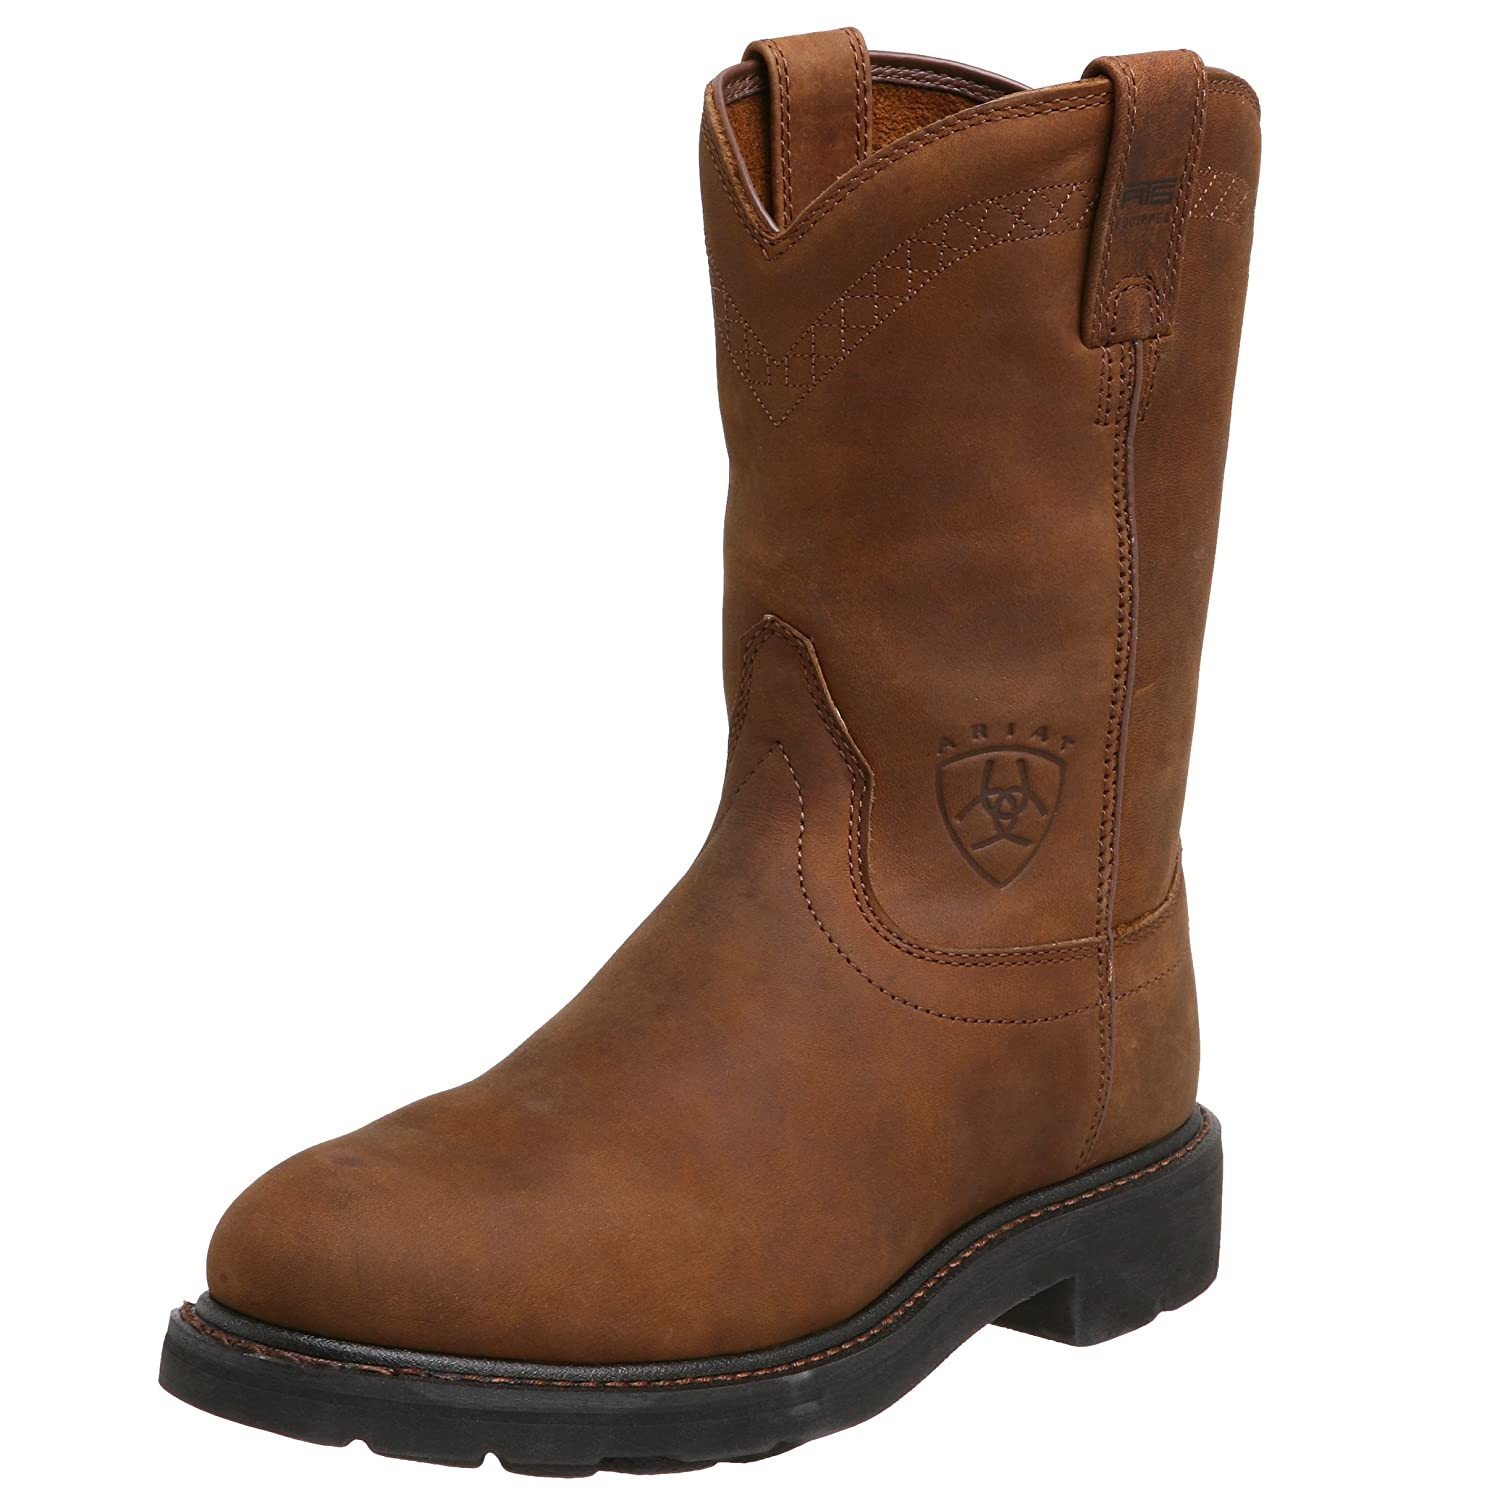 Ariat メンズ Sierrra B001AS7VF8 12 Medium (D) US|Aged Bark Aged Bark 12 Medium (D) US